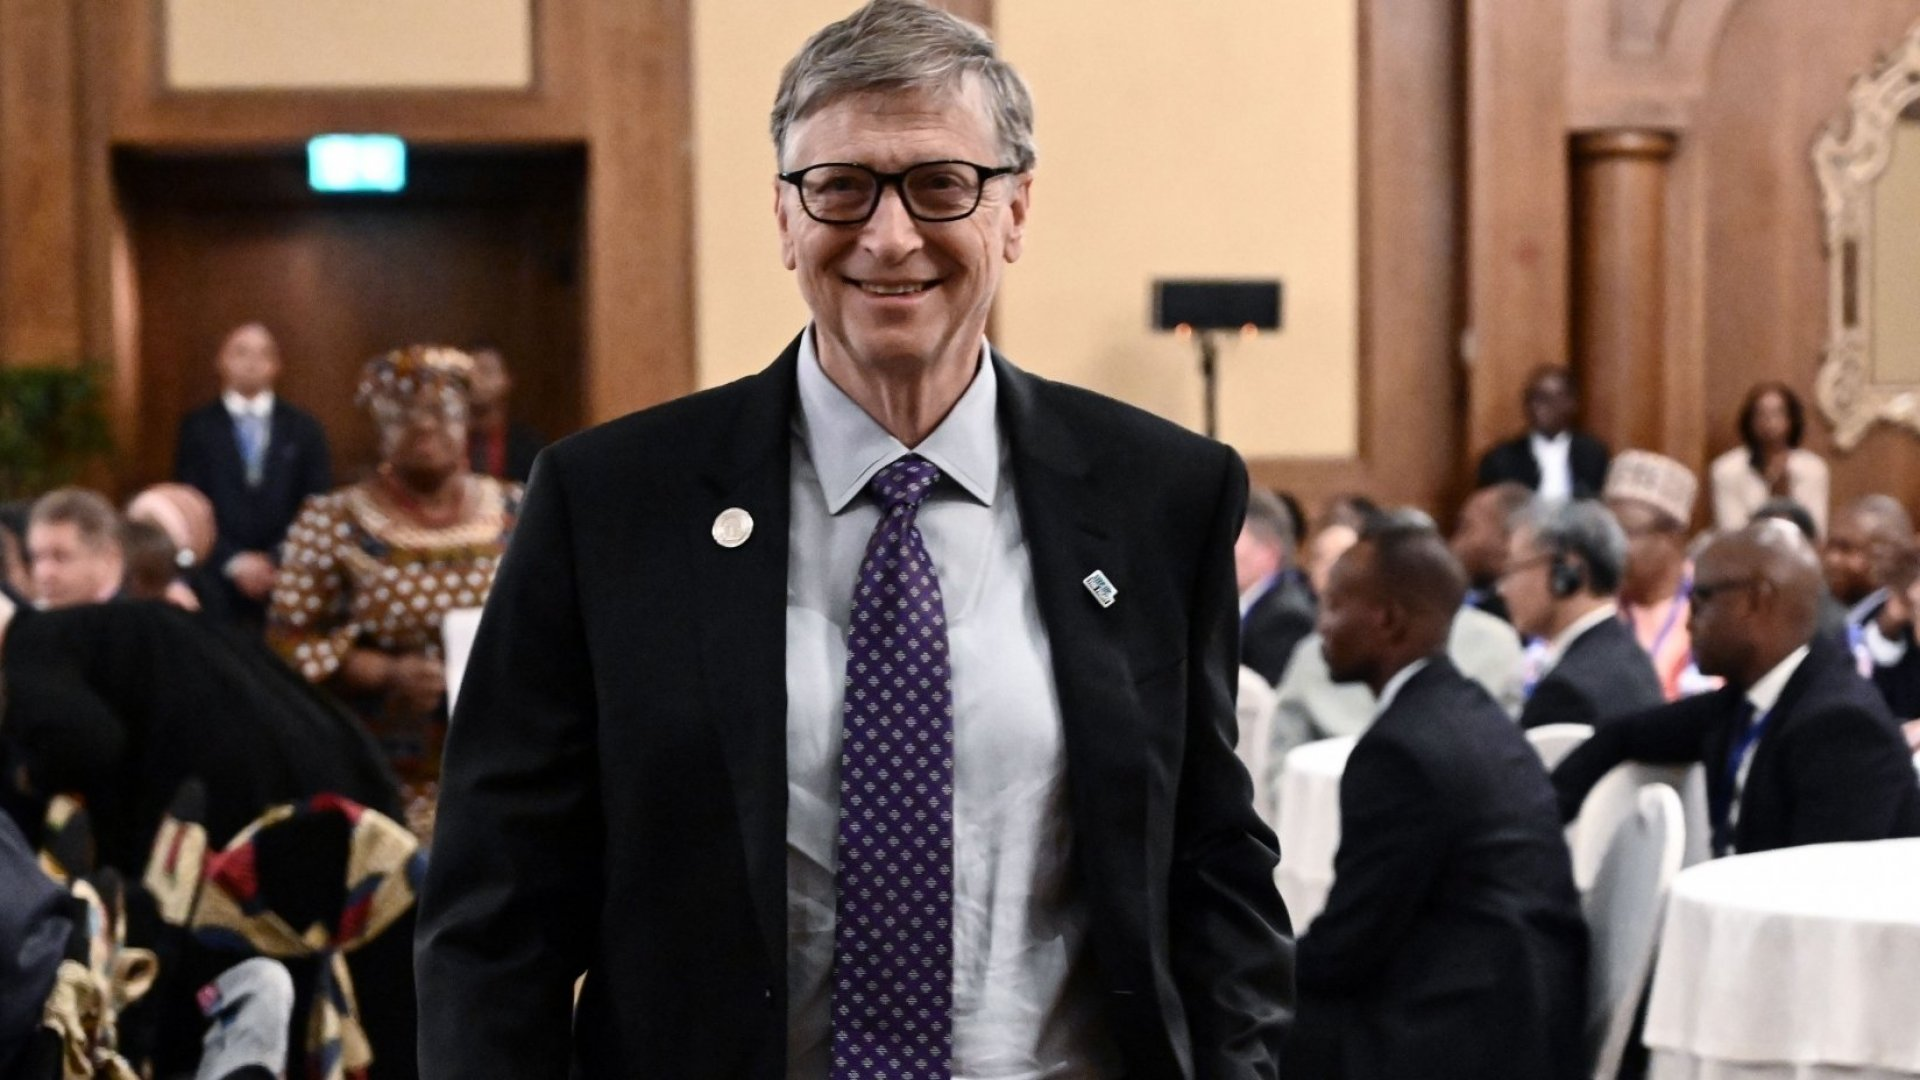 Bill Gates Used This Brilliant Communication Strategy to Quickly Explain the World's Toughest Problem